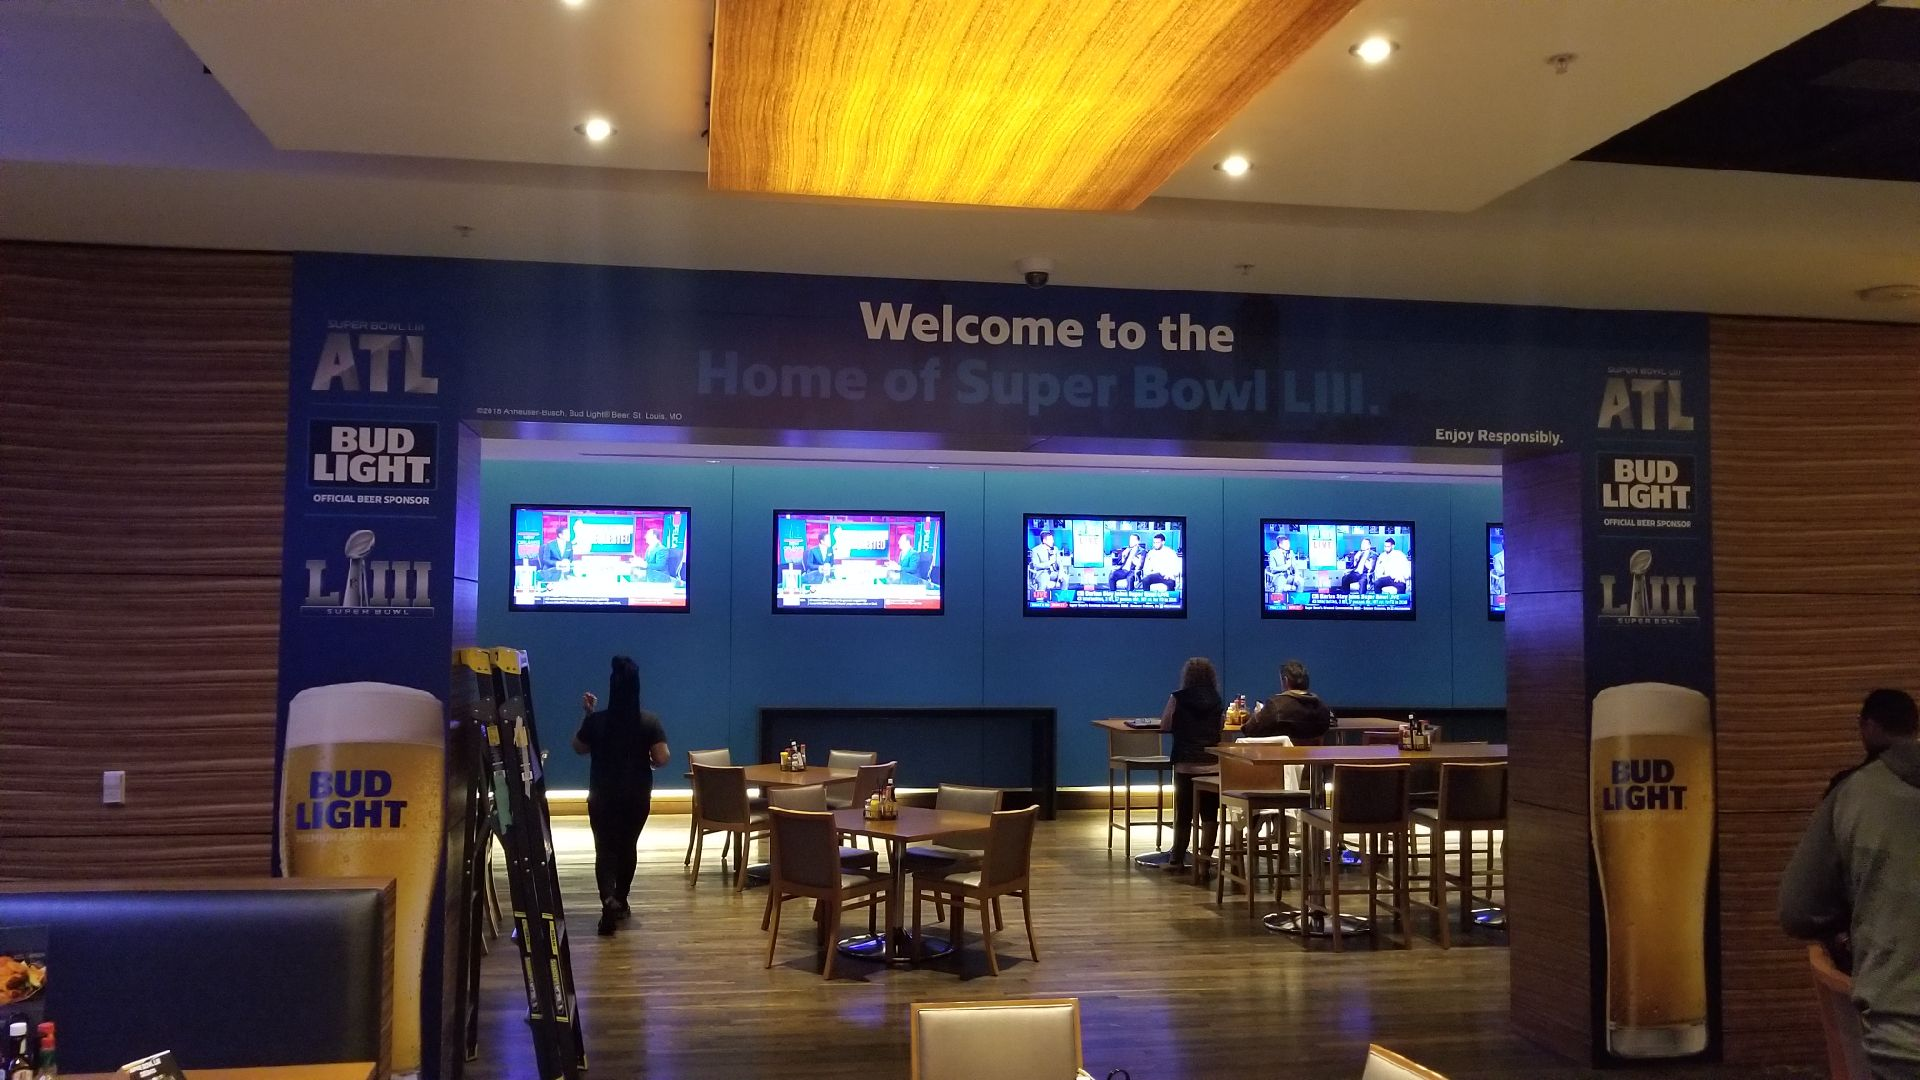 Anheuser-Busch-Super-Bowl-LIII_Marriott-Hotel_Window-Graphics_Events_LSIGraphics_Atlanta-GA ..